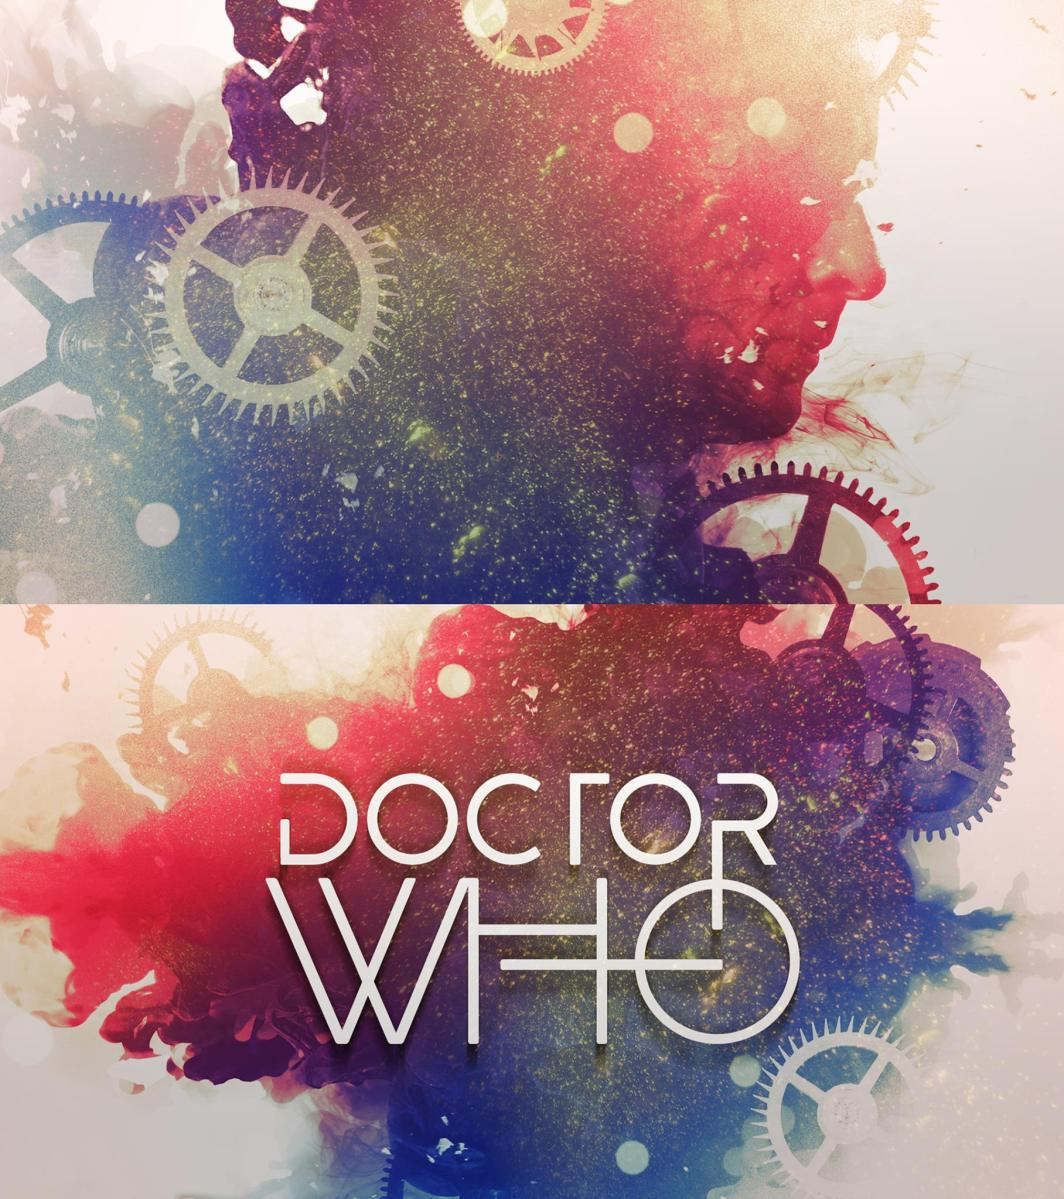 Stuart Manning concept idea for Doctor Who titles